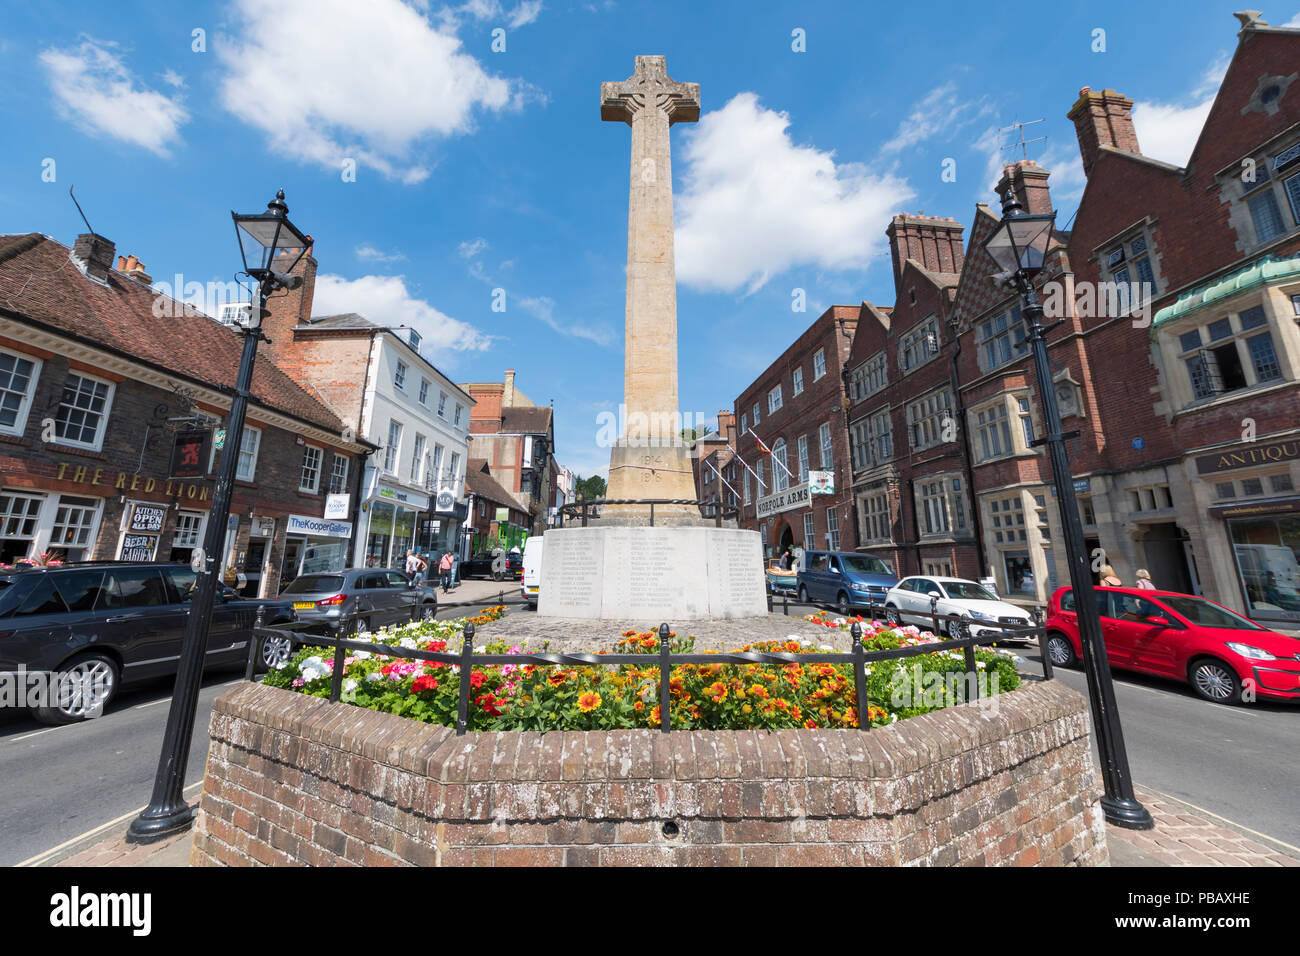 WWI and WWII war memorial in Summer in the High Street in Arundel, West Sussex, England, UK. - Stock Image